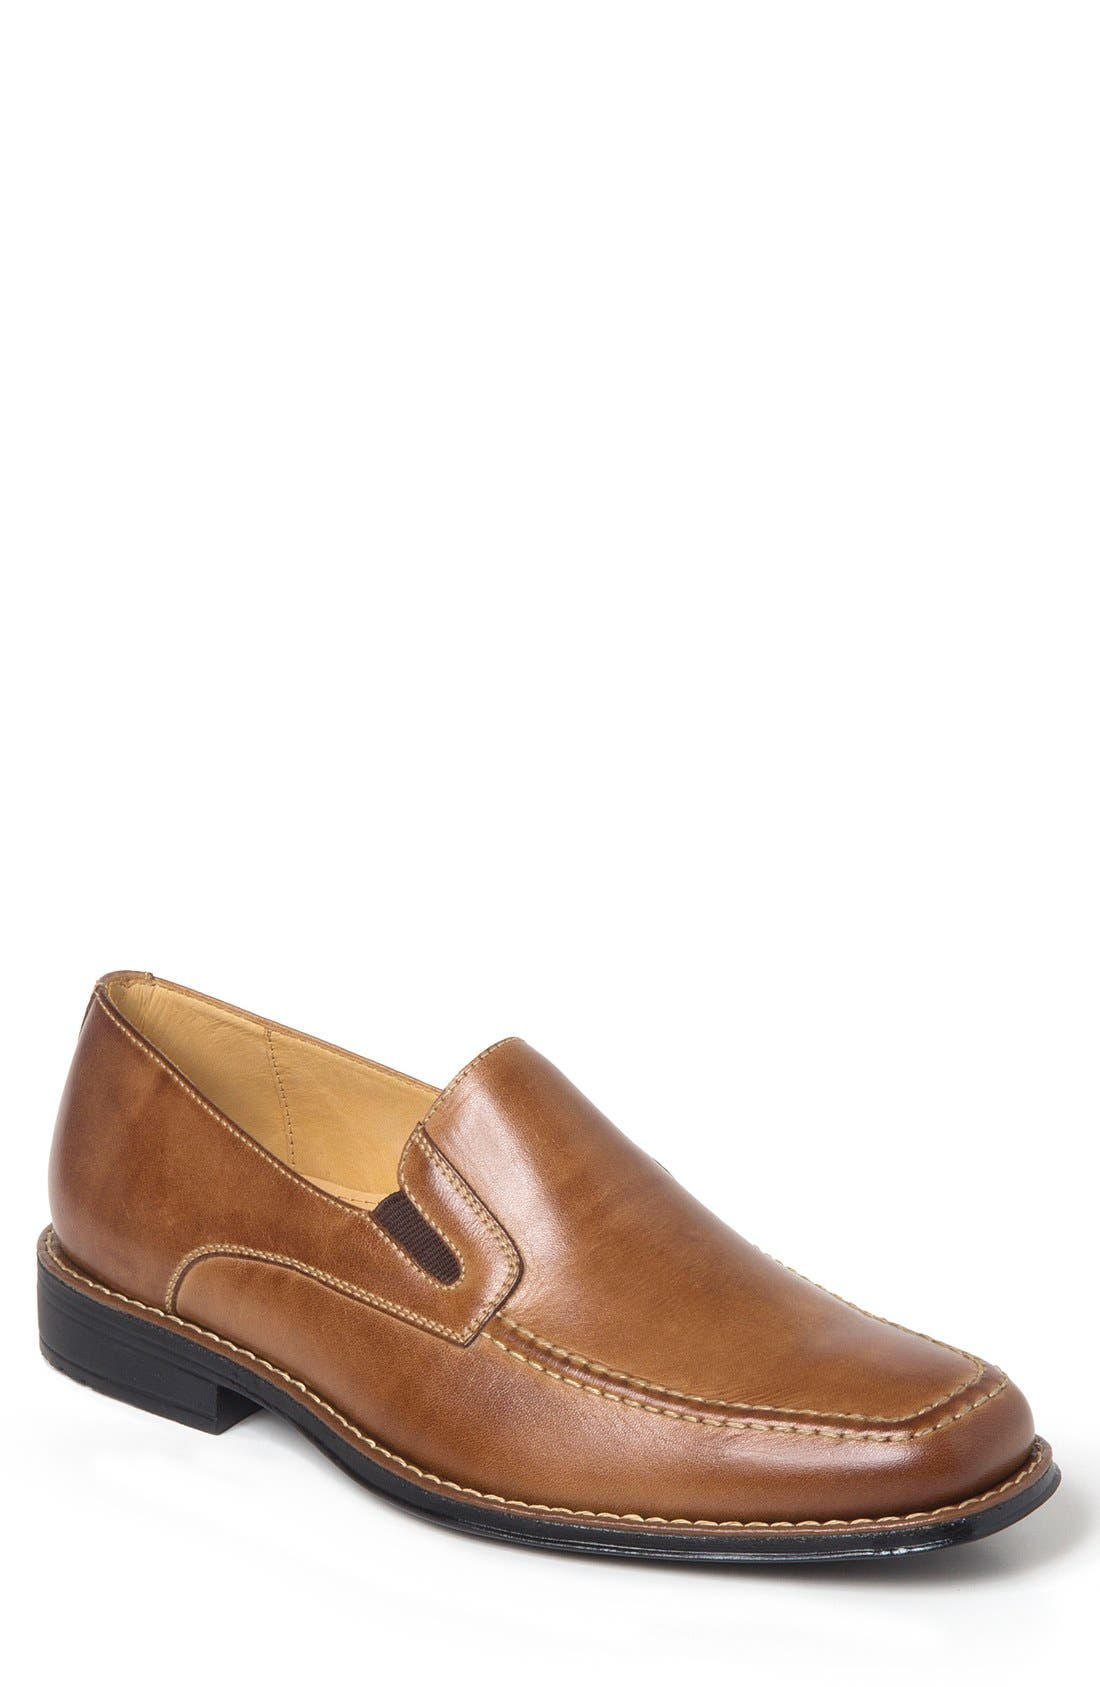 Sandro Moscoloni Marc Venetian Loafer, Brown